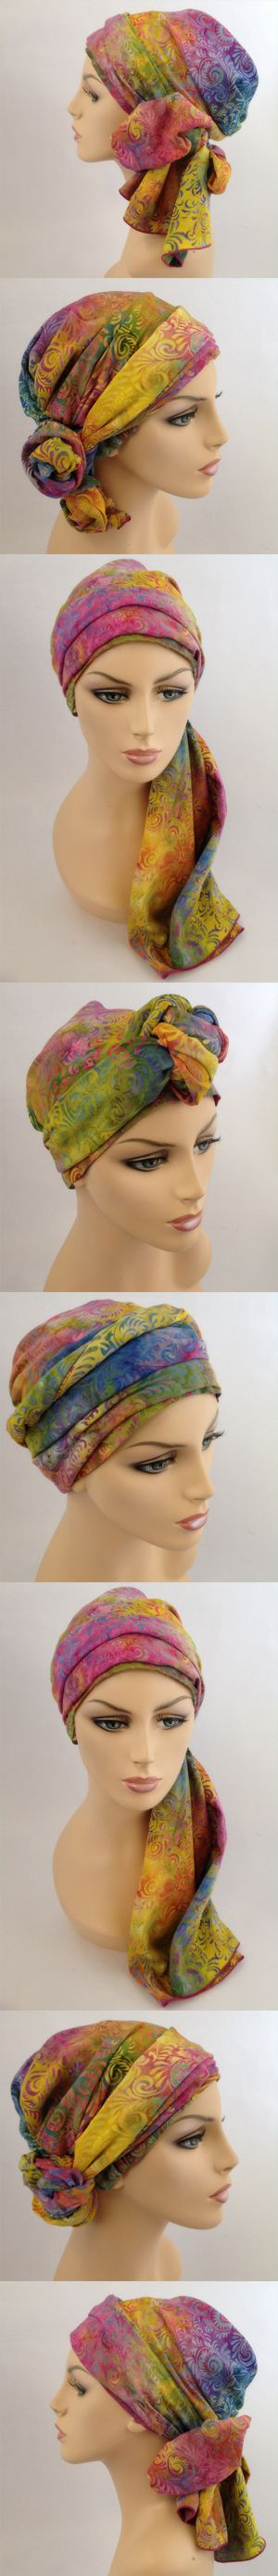 Turban Set is easy to tie in dozens of styles! Perfect for #chemo